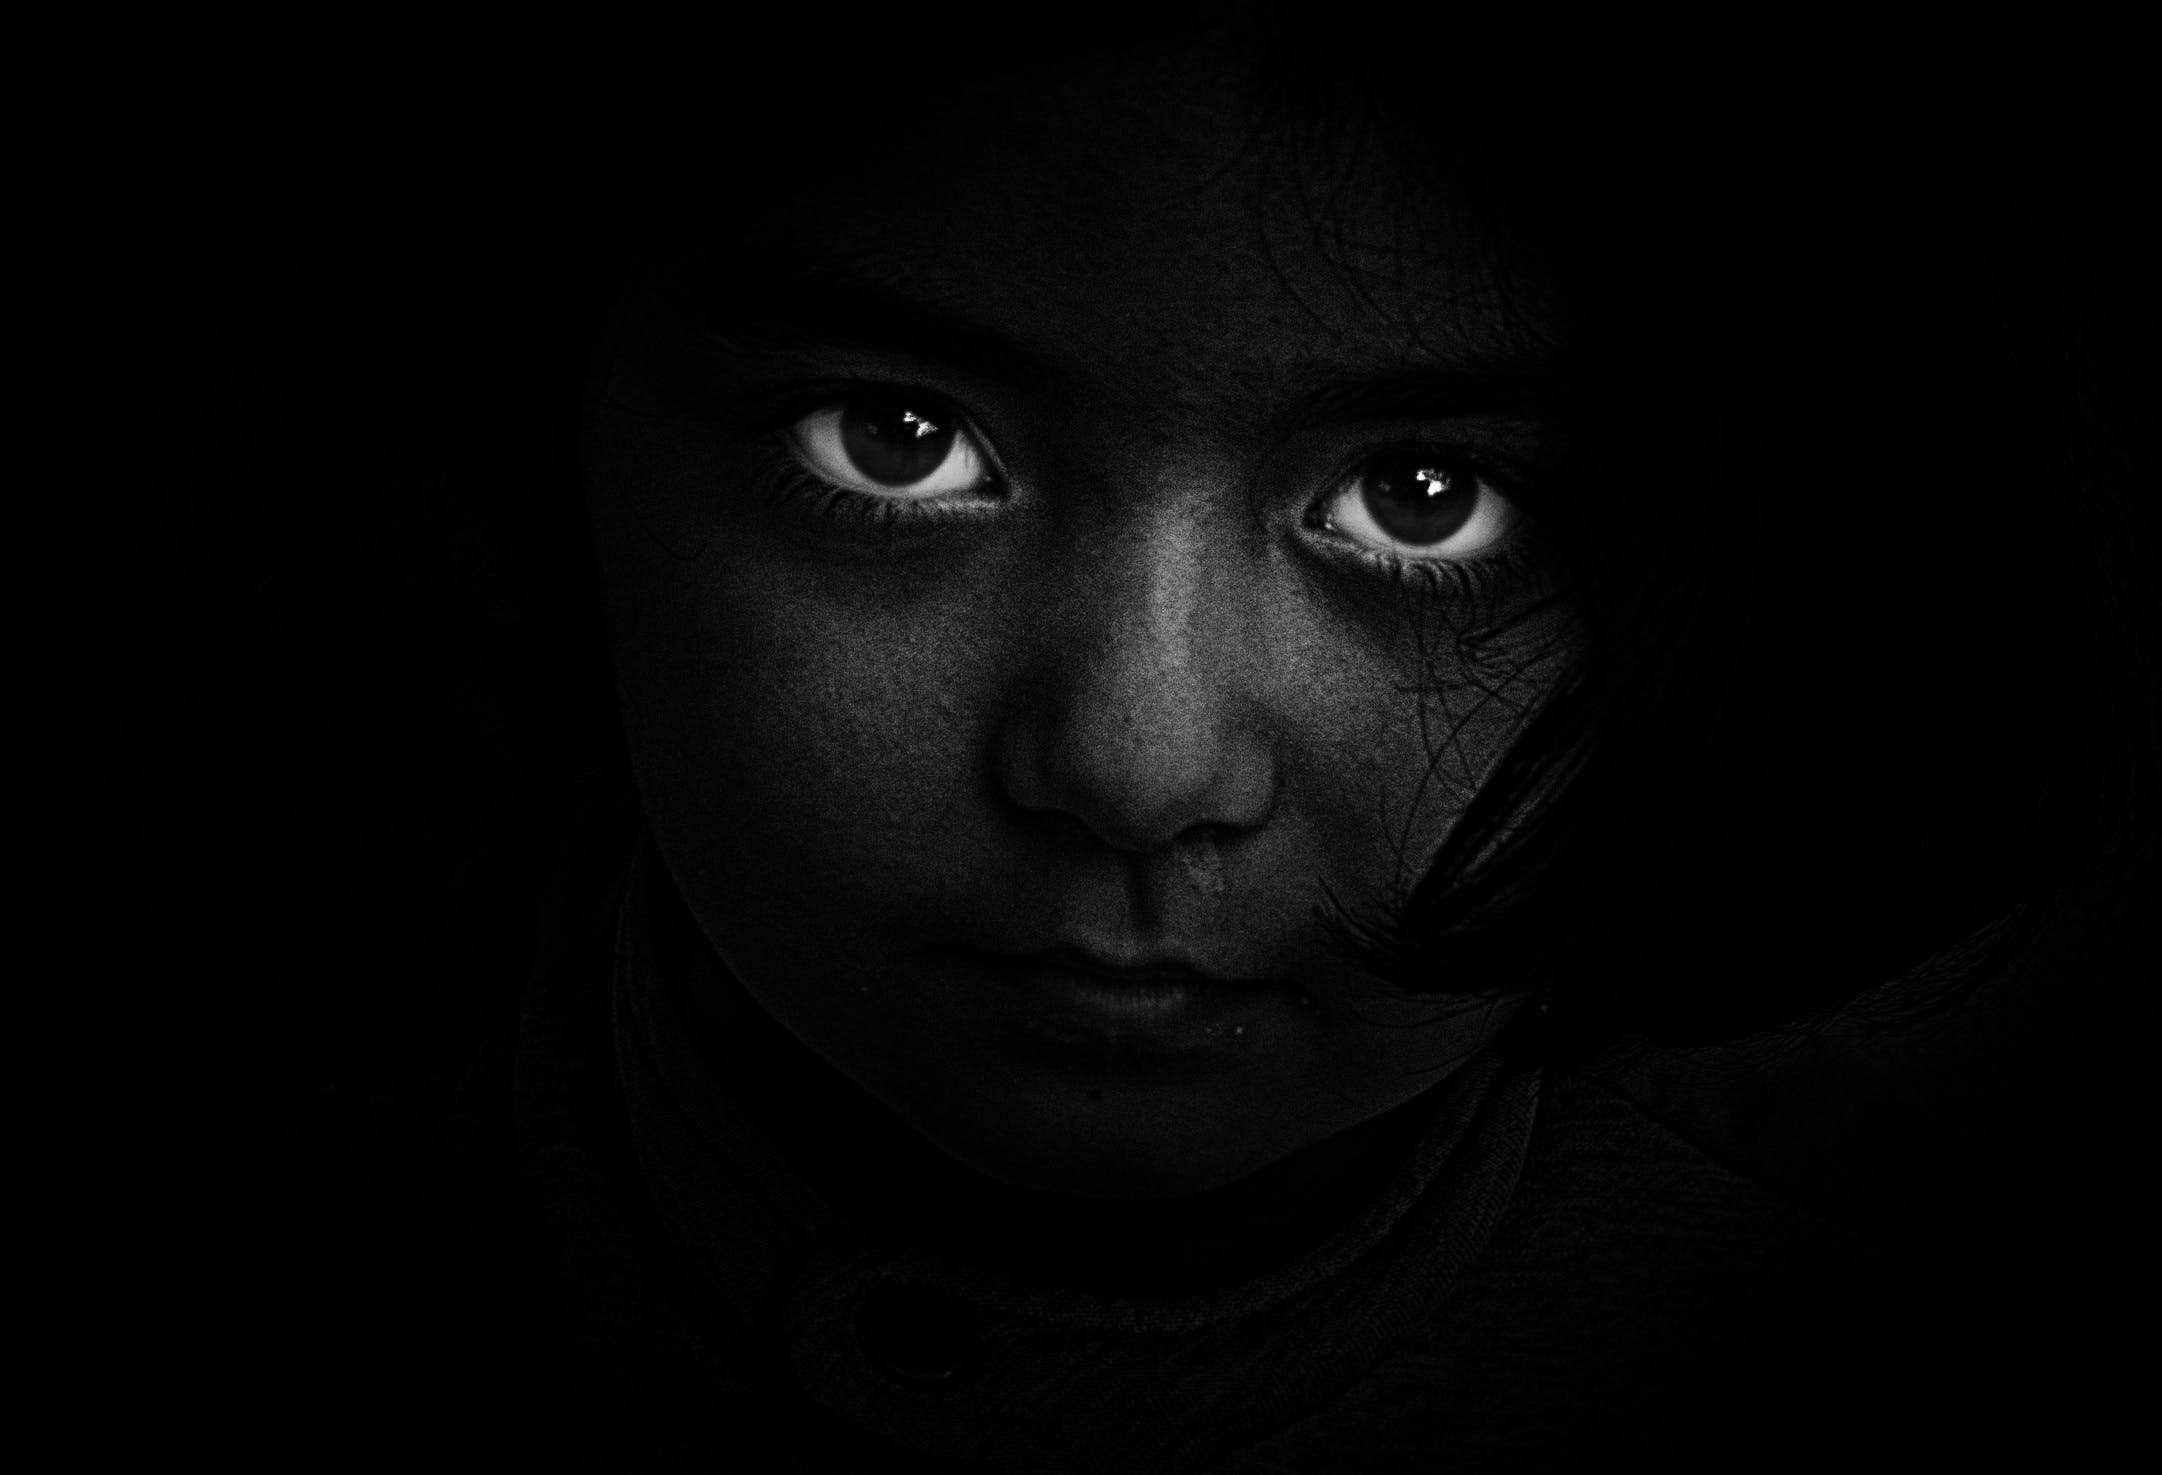 Grayscale Photography of Girl's Face